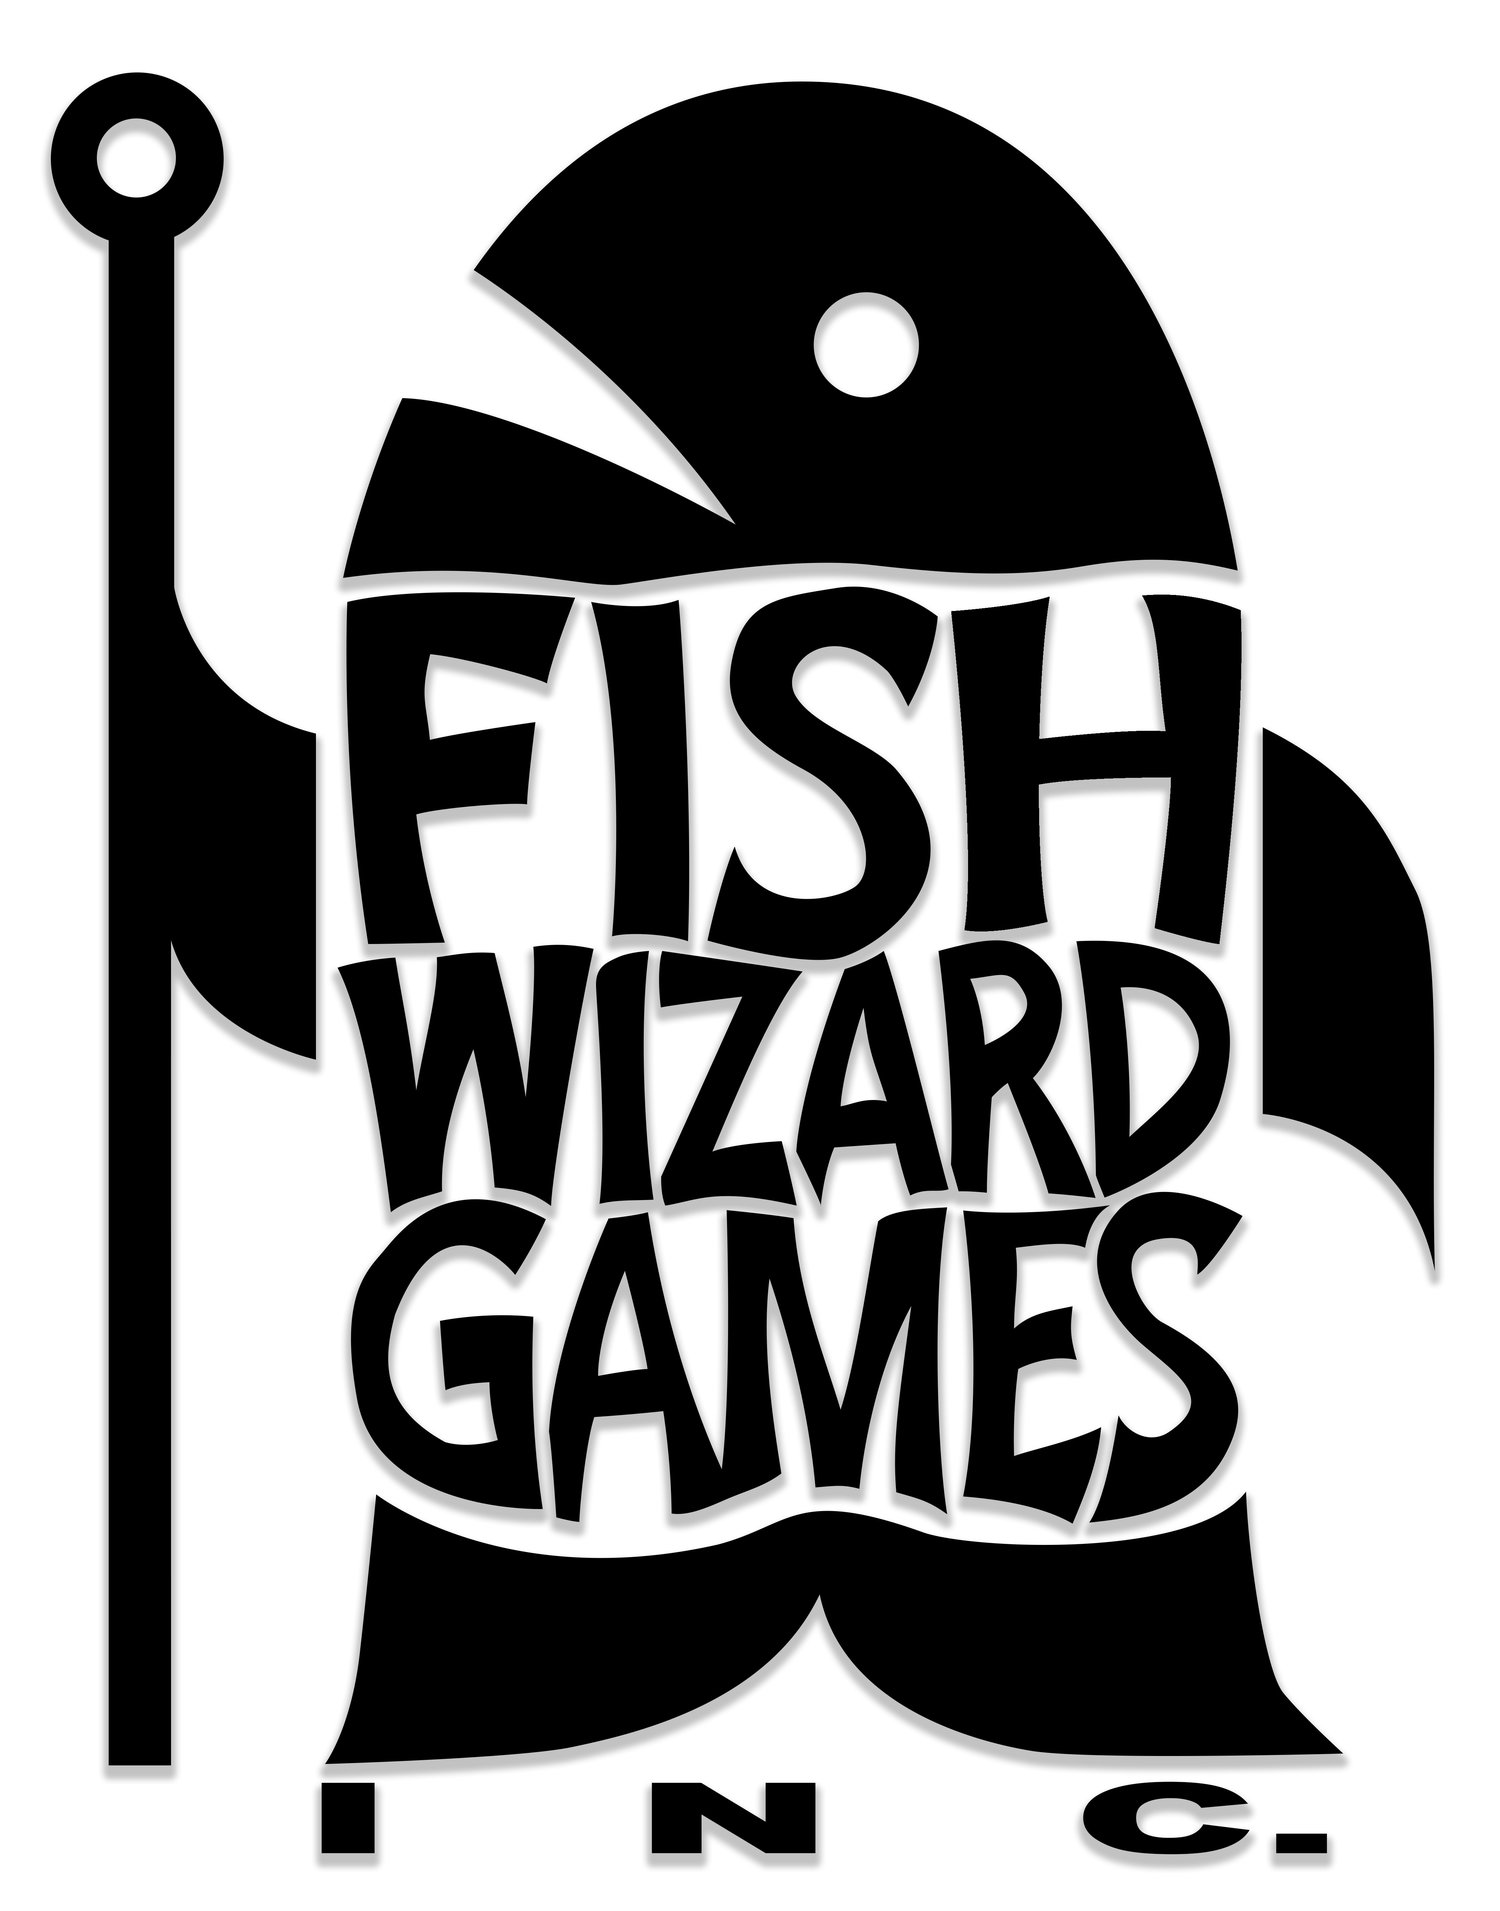 Fishwizard Games